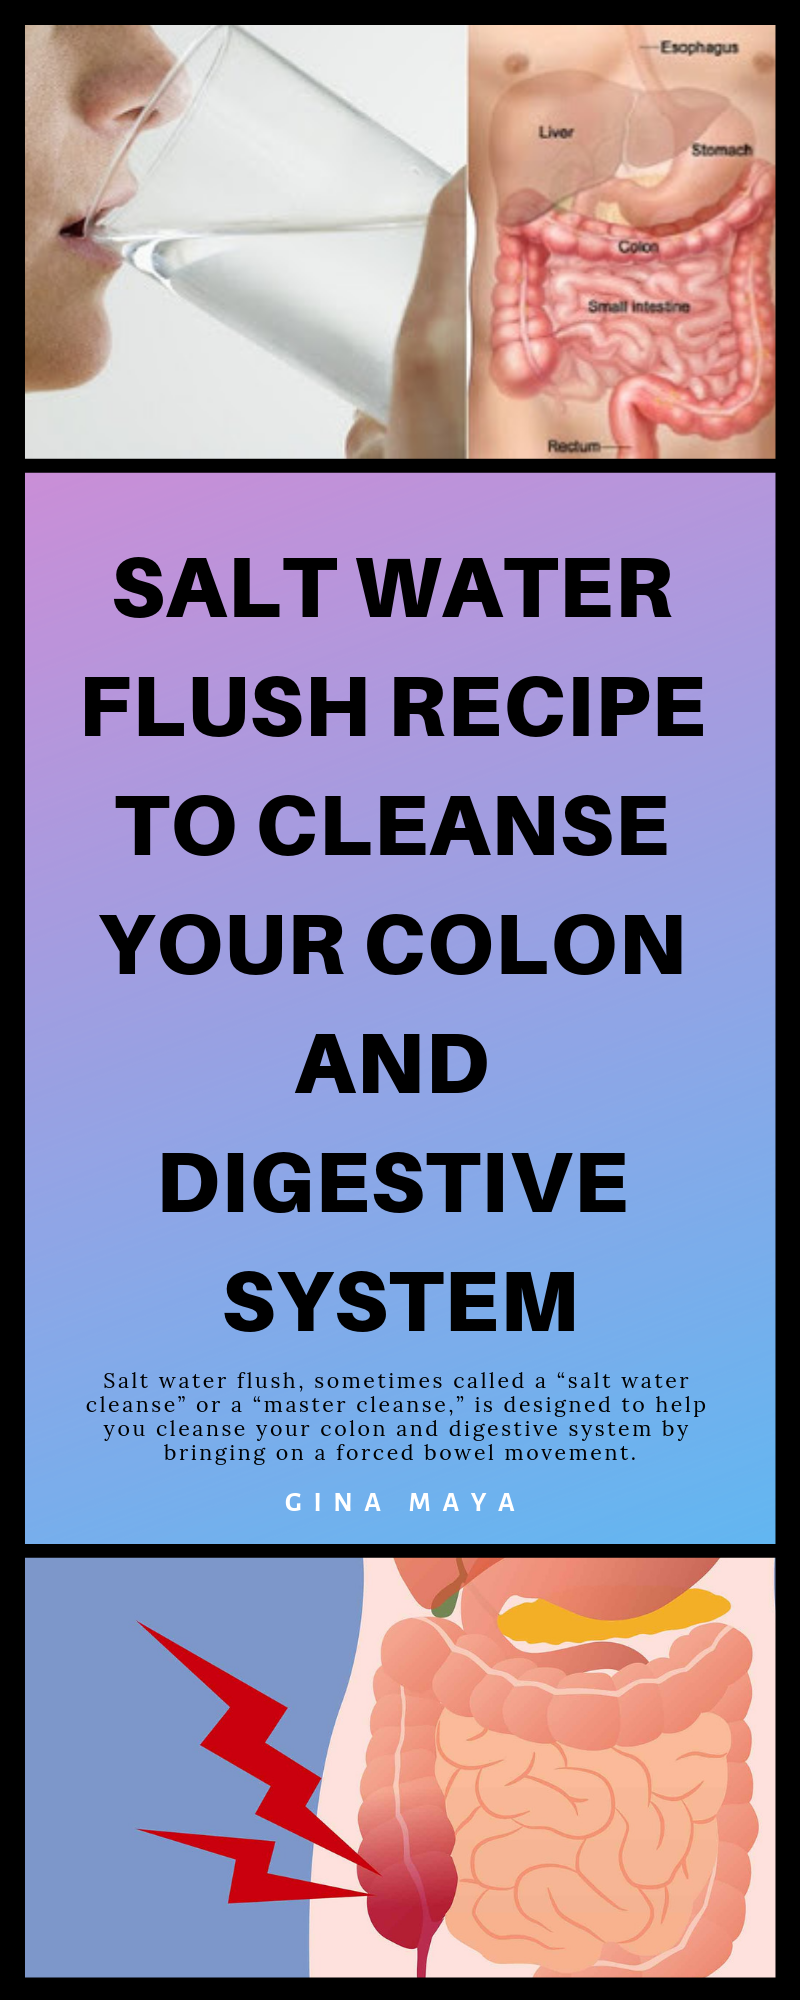 Salt Water Flush Recipe to Cleanse Your Colon and Digestive System